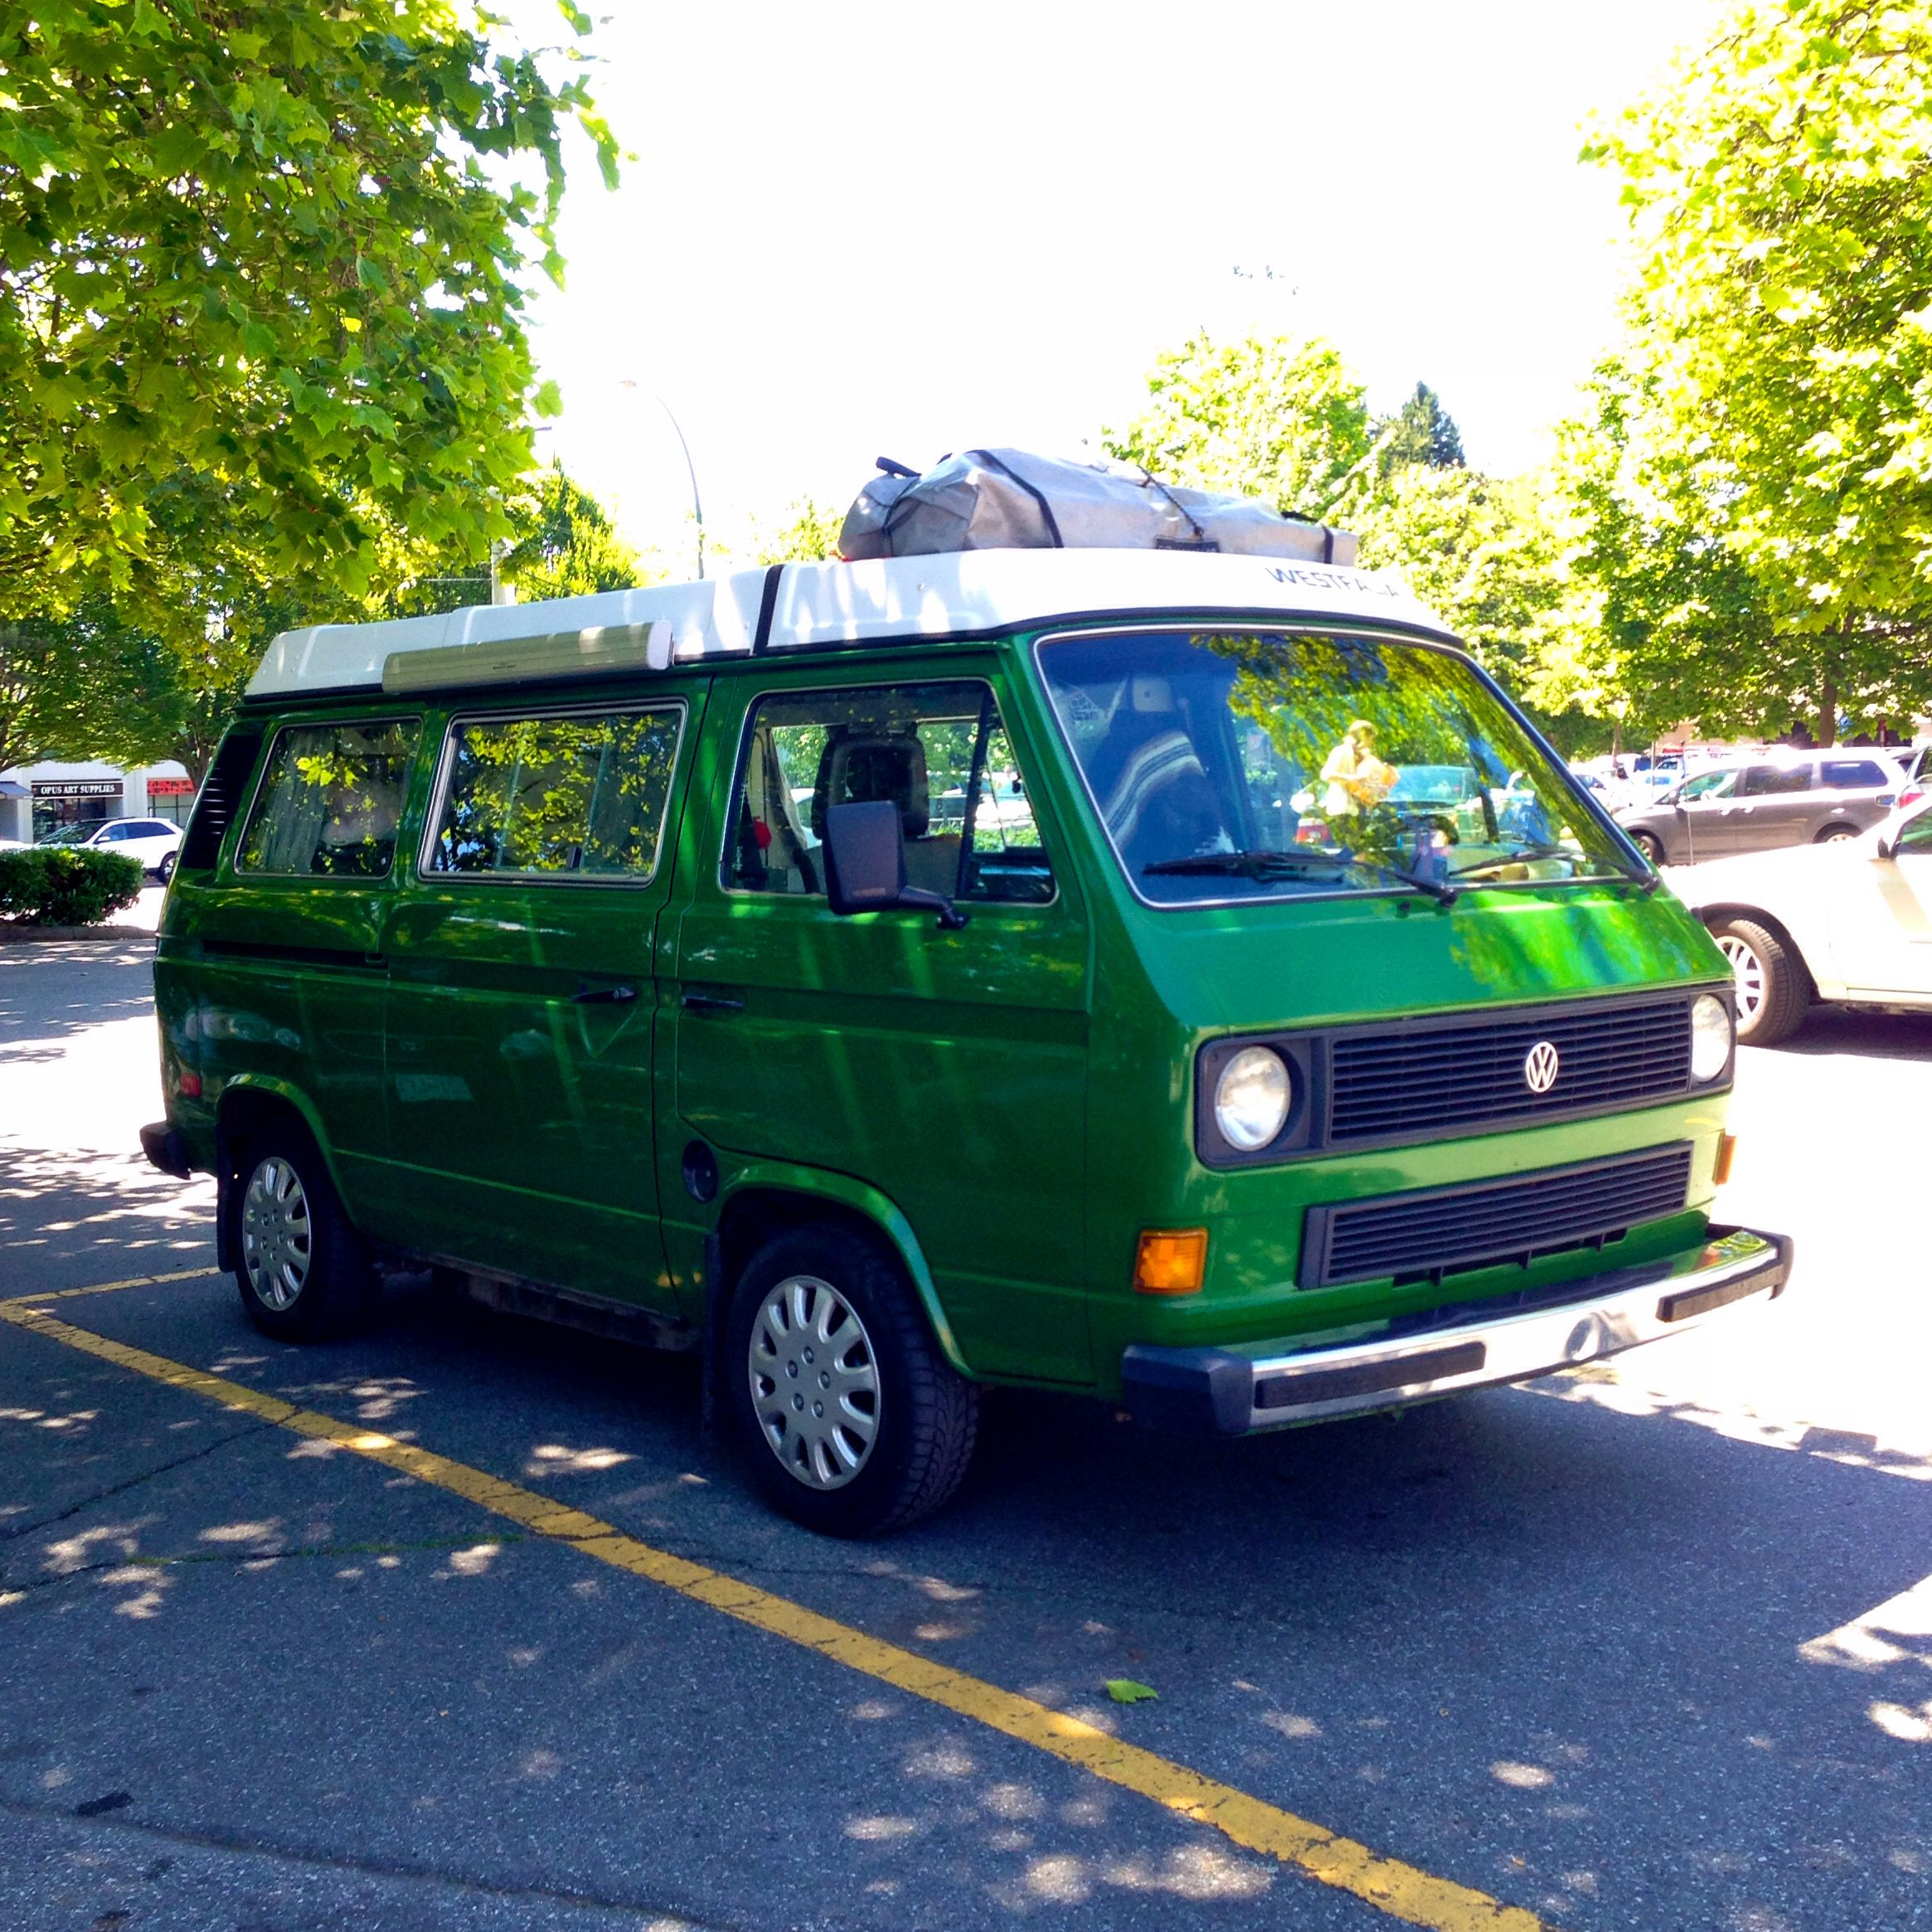 A Very Rare Vw Vanagon Spotted At Capilano Mall Green Is Rare